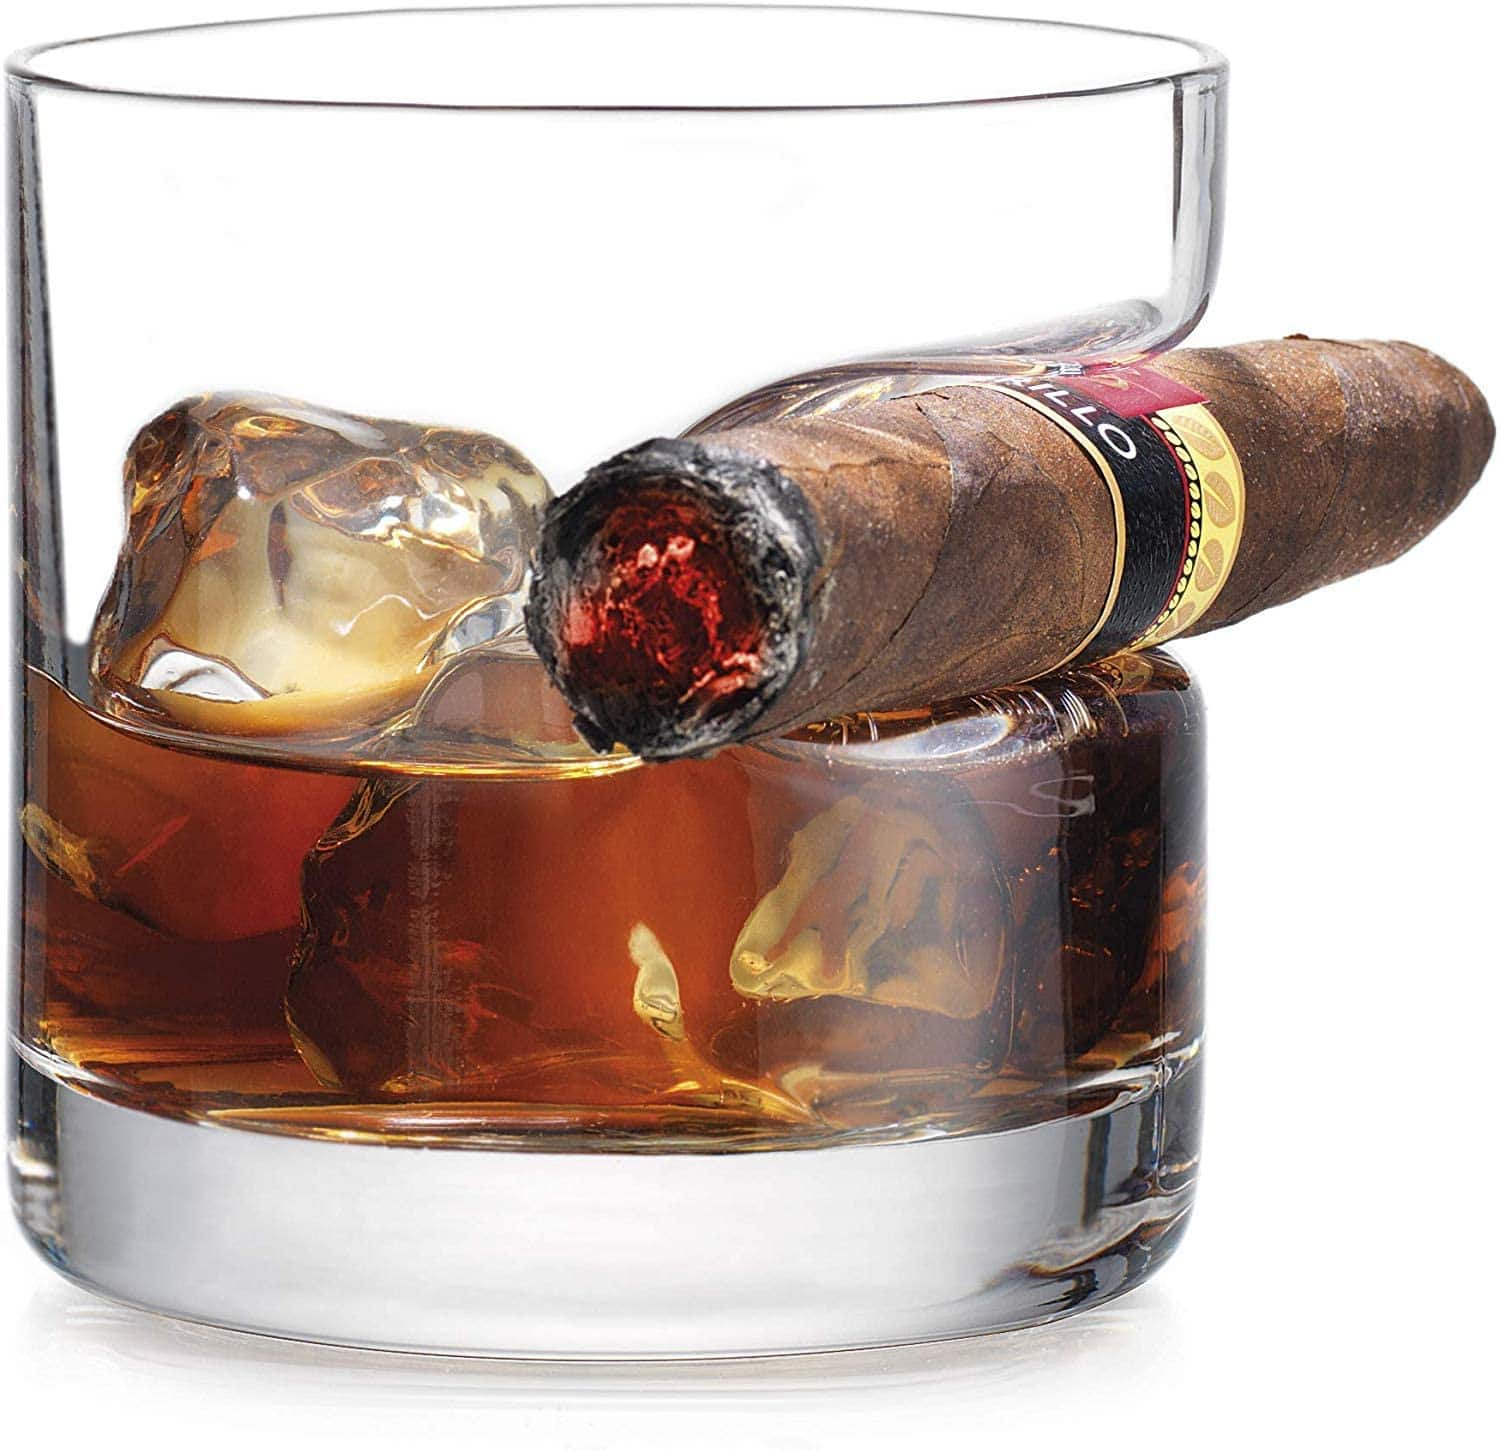 Old Fashioned Whiskey Glass With Indented Cigar Rest $10.74 @ Amazon